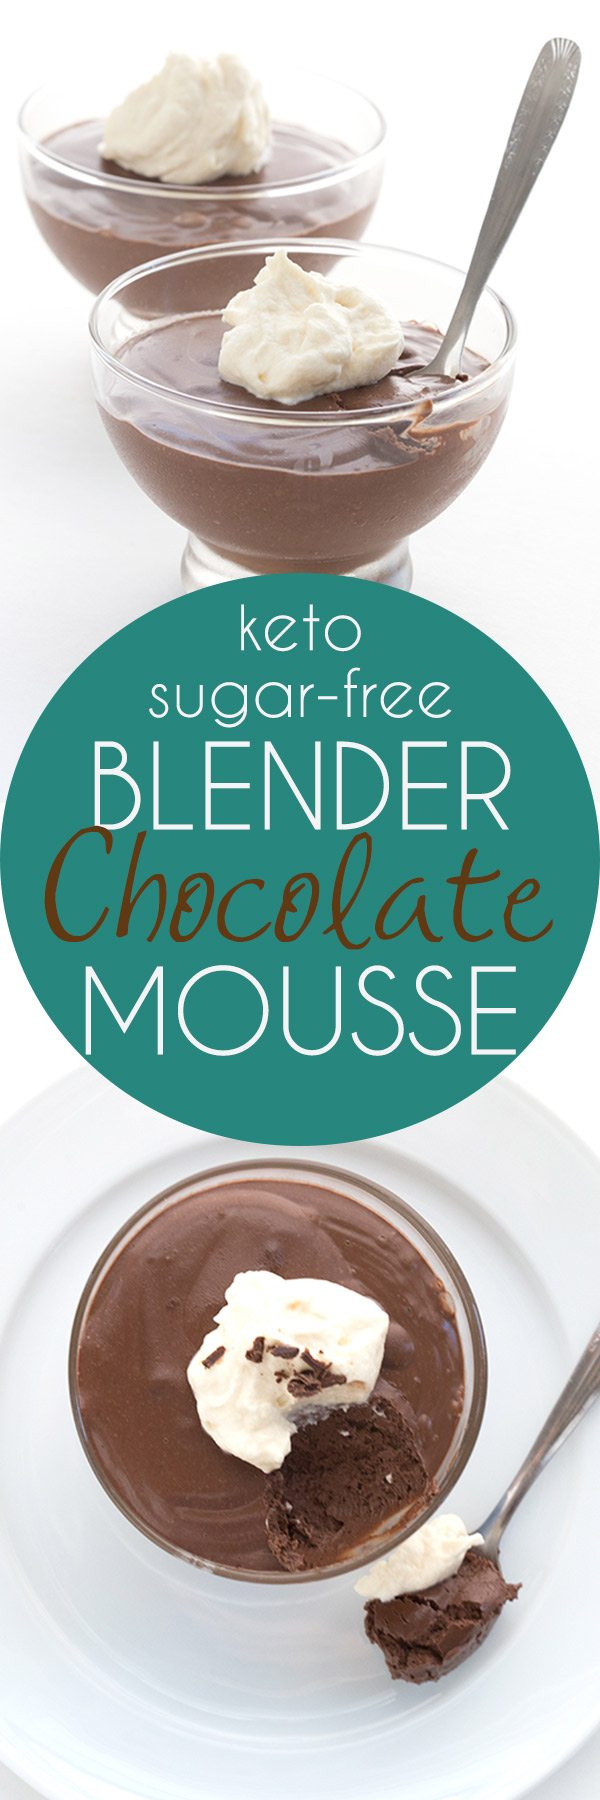 Easy Low Carb Blender Mousse - whip up rich keto chocolate mousse any old time. It's ready in minutes! #keto #lowcarb #sugarfree #ketorecipes